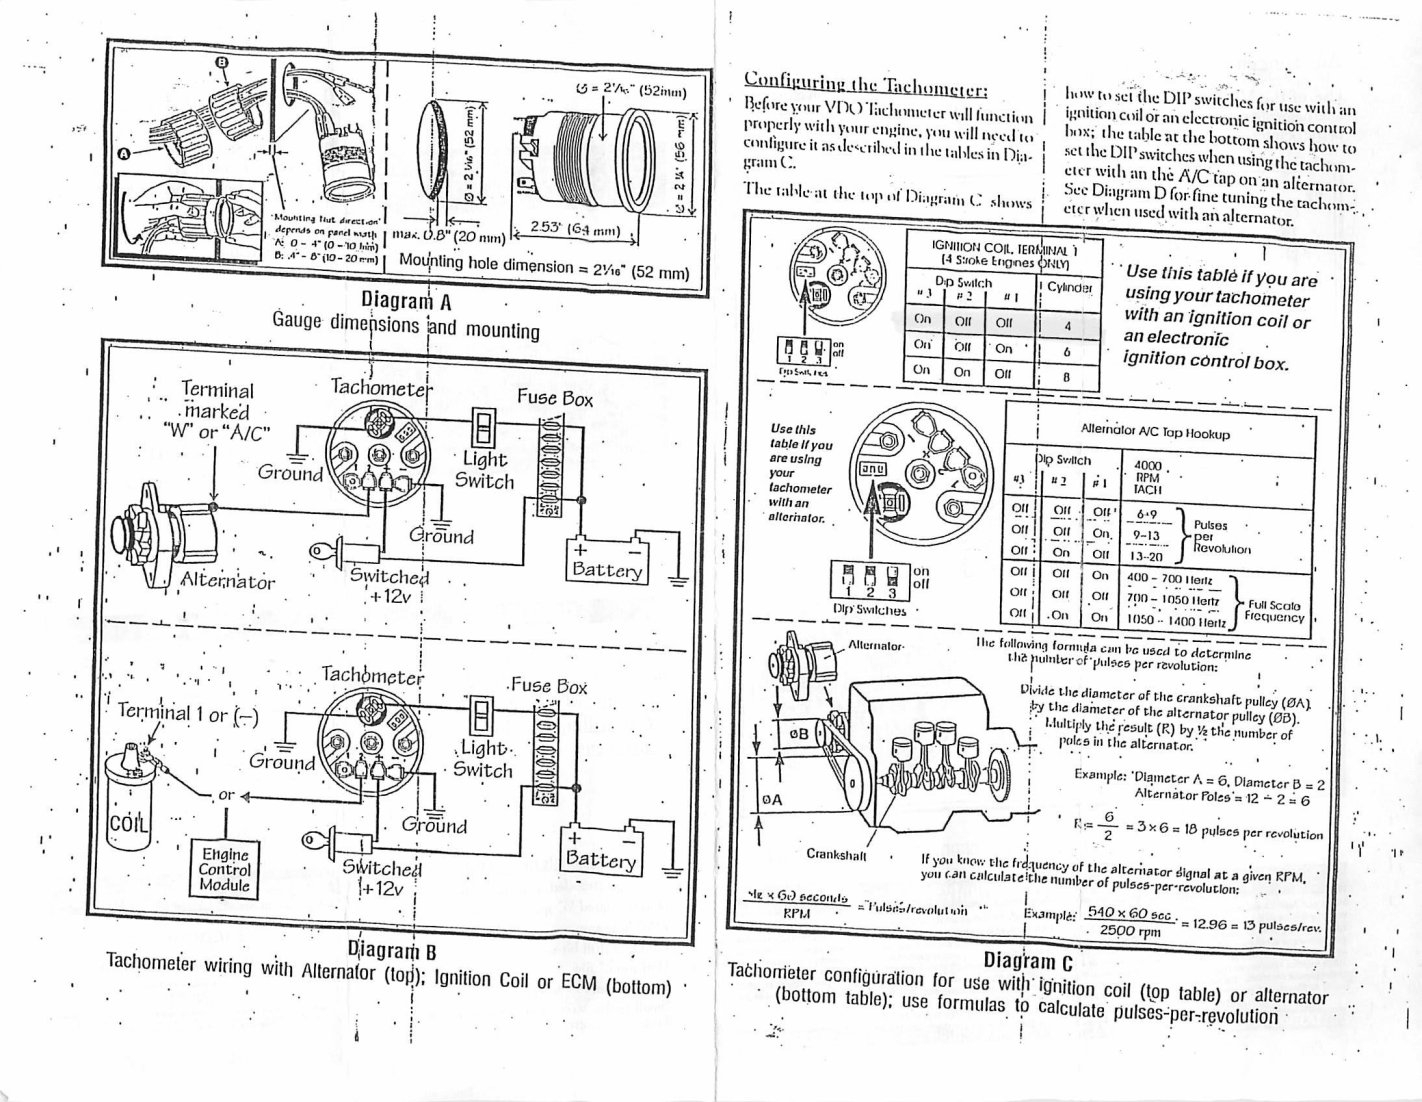 Vdo Tach Wiring Diagram Small | Online Wiring Diagram Boat Sdo Wiring Diagram on boat alternator diagram, port side of boat diagram, speed boat diagram, boat steering diagram, race car ignition diagram, boat anatomy diagram, boat plumbing diagram, rewiring a boat diagram, boat electrical diagram, boat engine, boat lighting diagram, pontoon boat diagram, circuit diagram, boat parts diagram, boat inverters diagram, simple boat diagram, cessna 152 electrical system diagram, boat lights diagram, boat construction diagram, boat schematics,